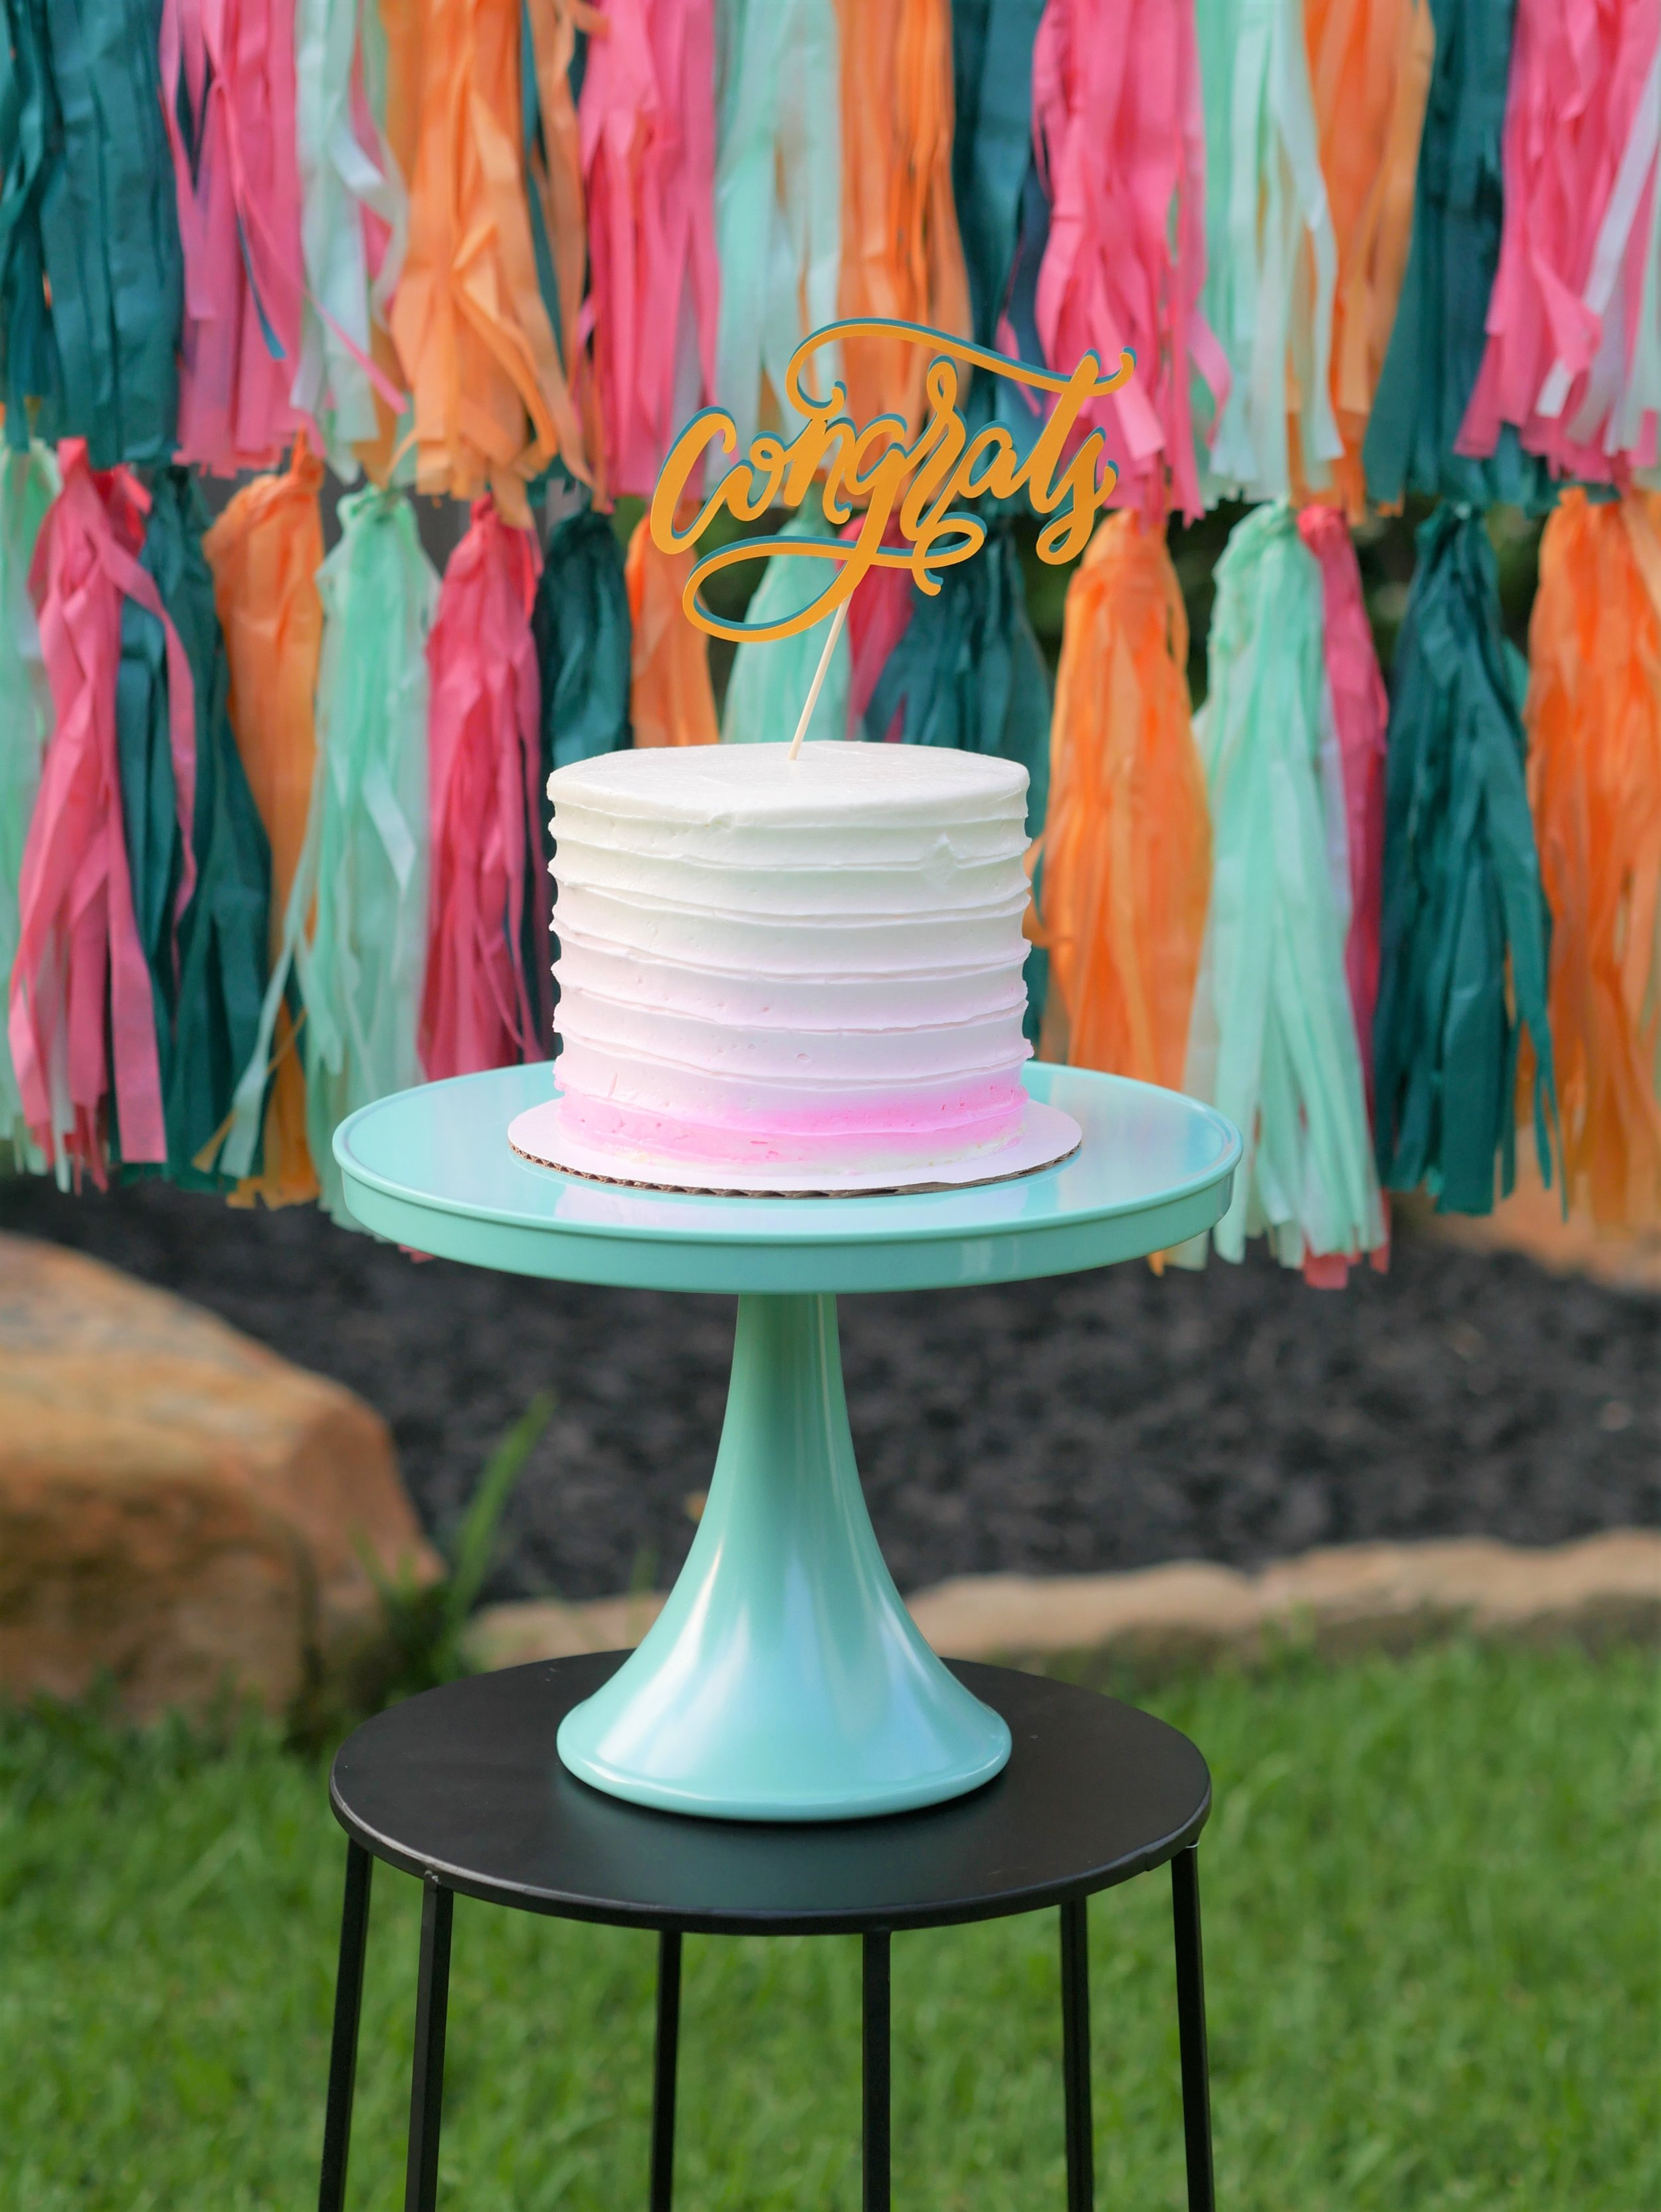 Tres leches cake and banner backdrop with tissue tassel garlands to match the party colors. See more from this Grad Party on Mint Event Design www.minteventdesign.com #graduationparty #graduationpartyideas #graduation #gradparty #gradpartyideas #partydecor #graduationcake